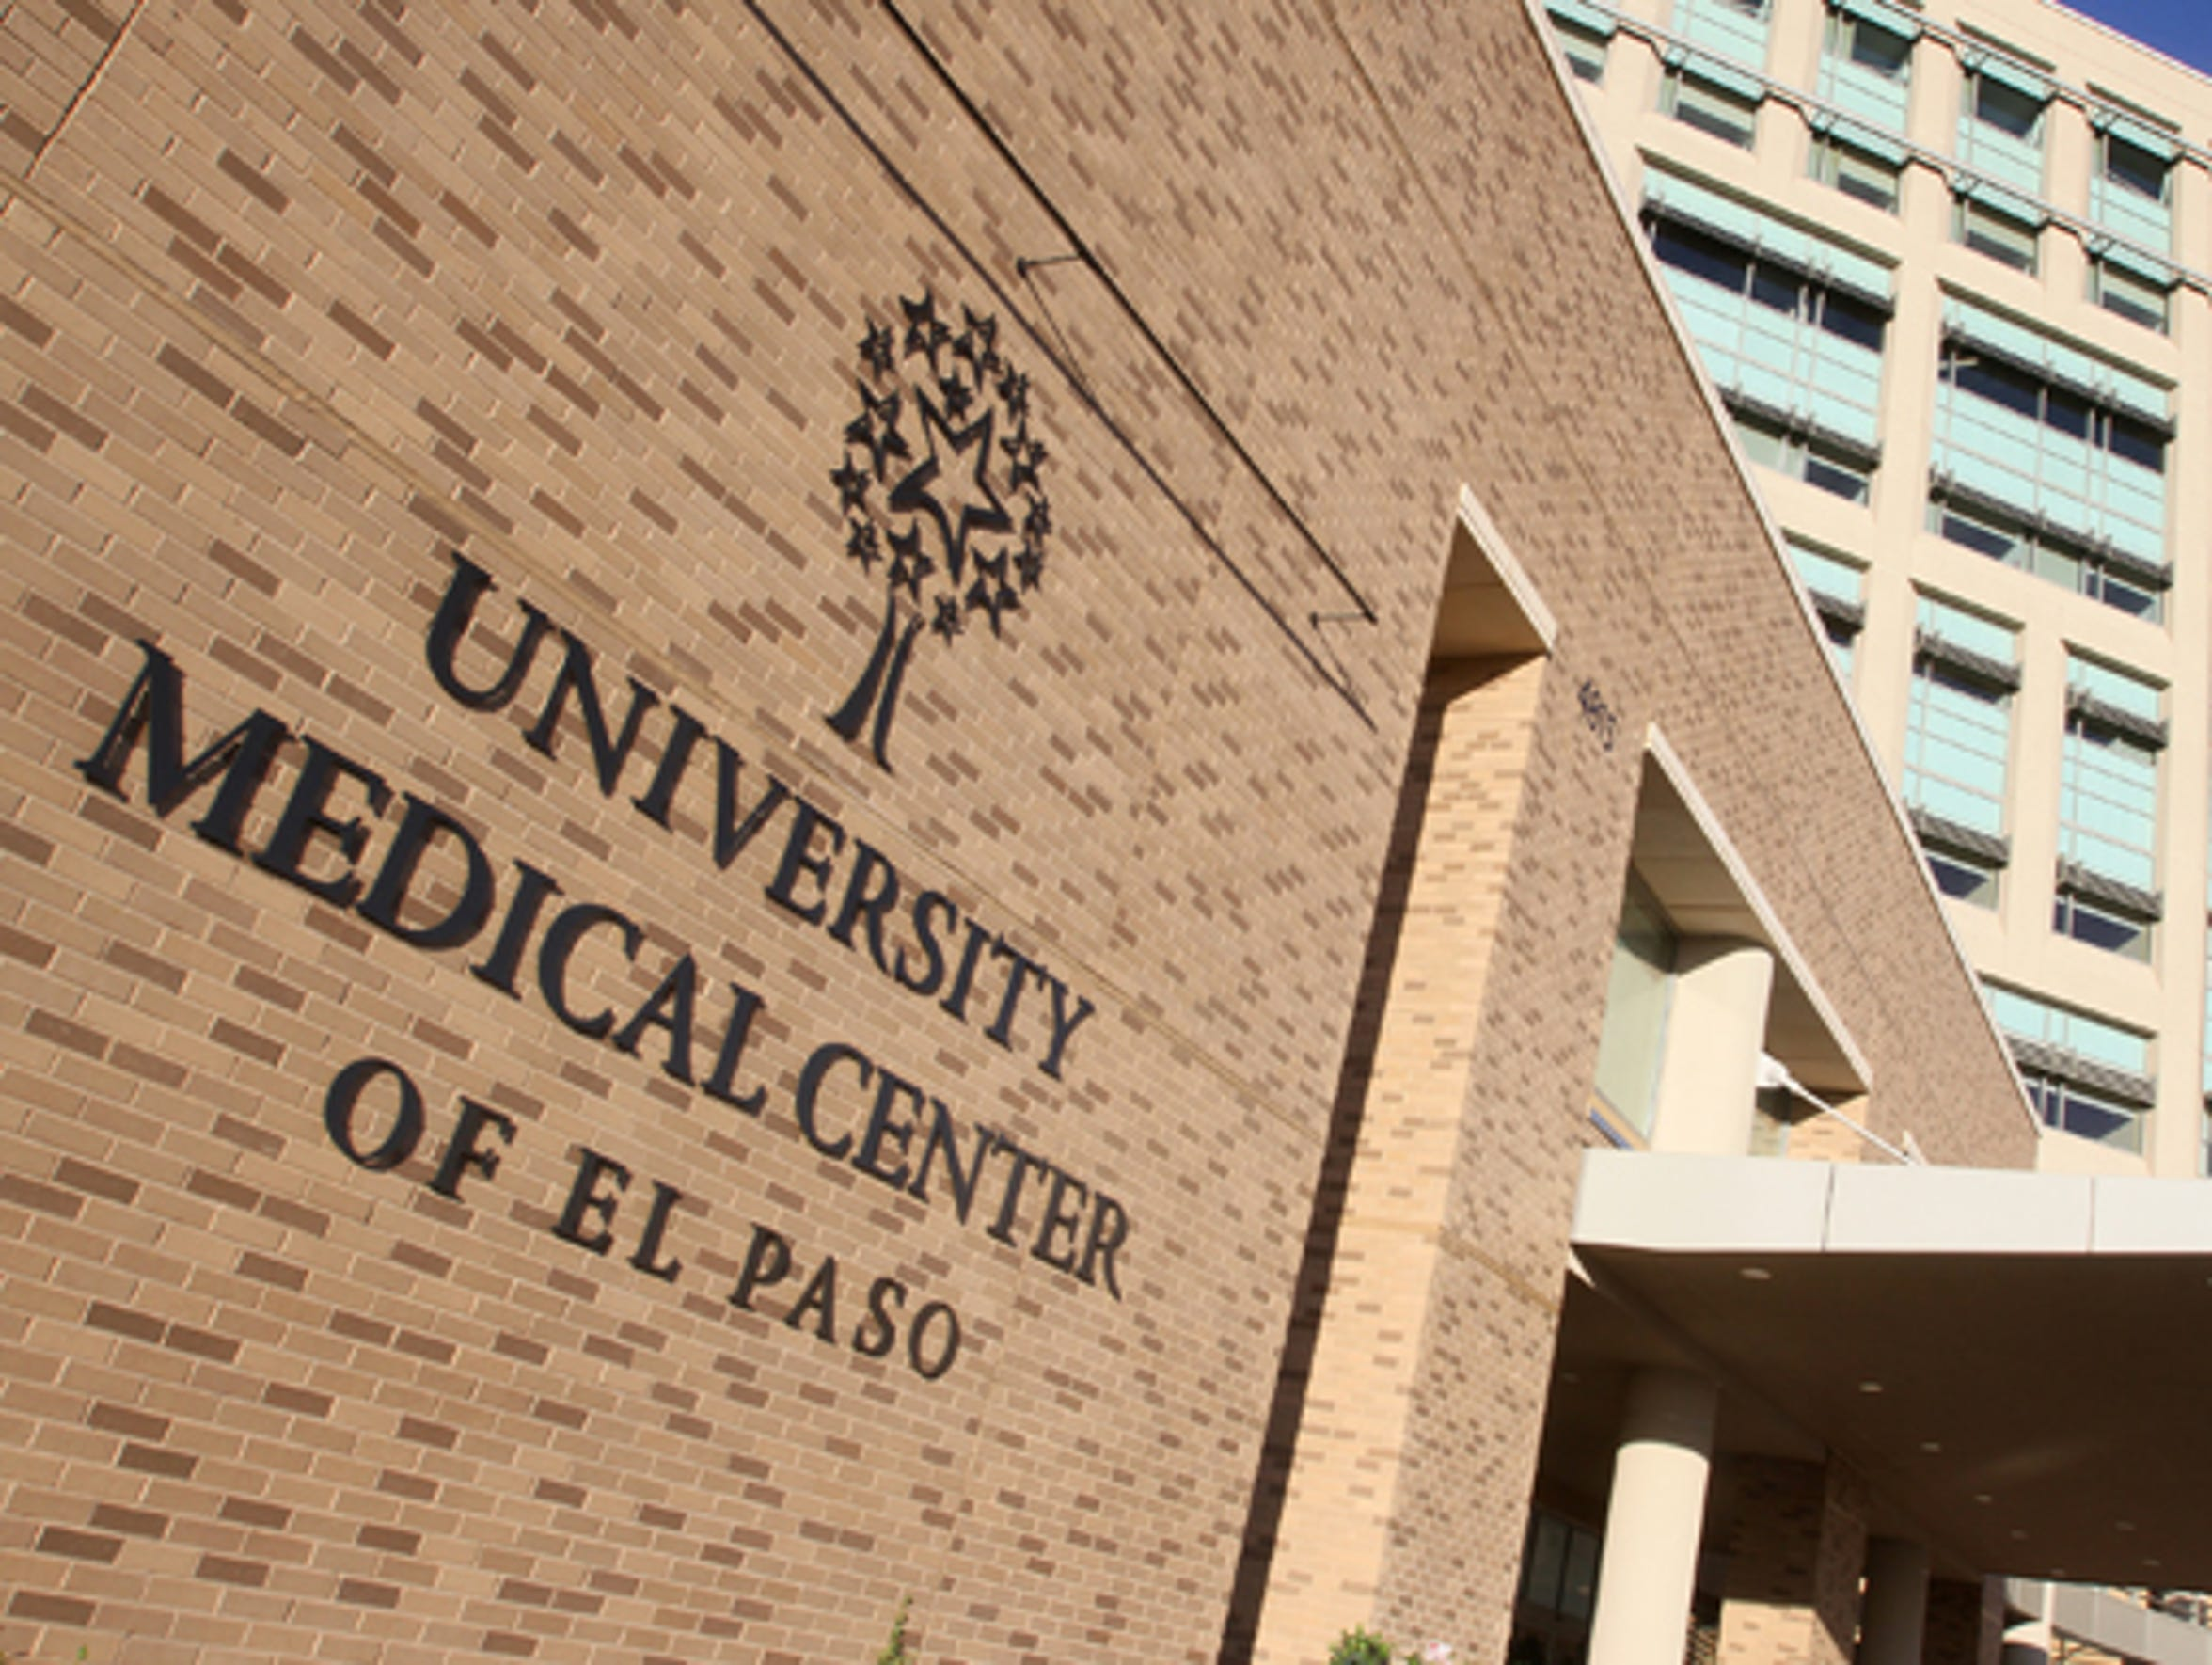 University Medical Center of El Paso